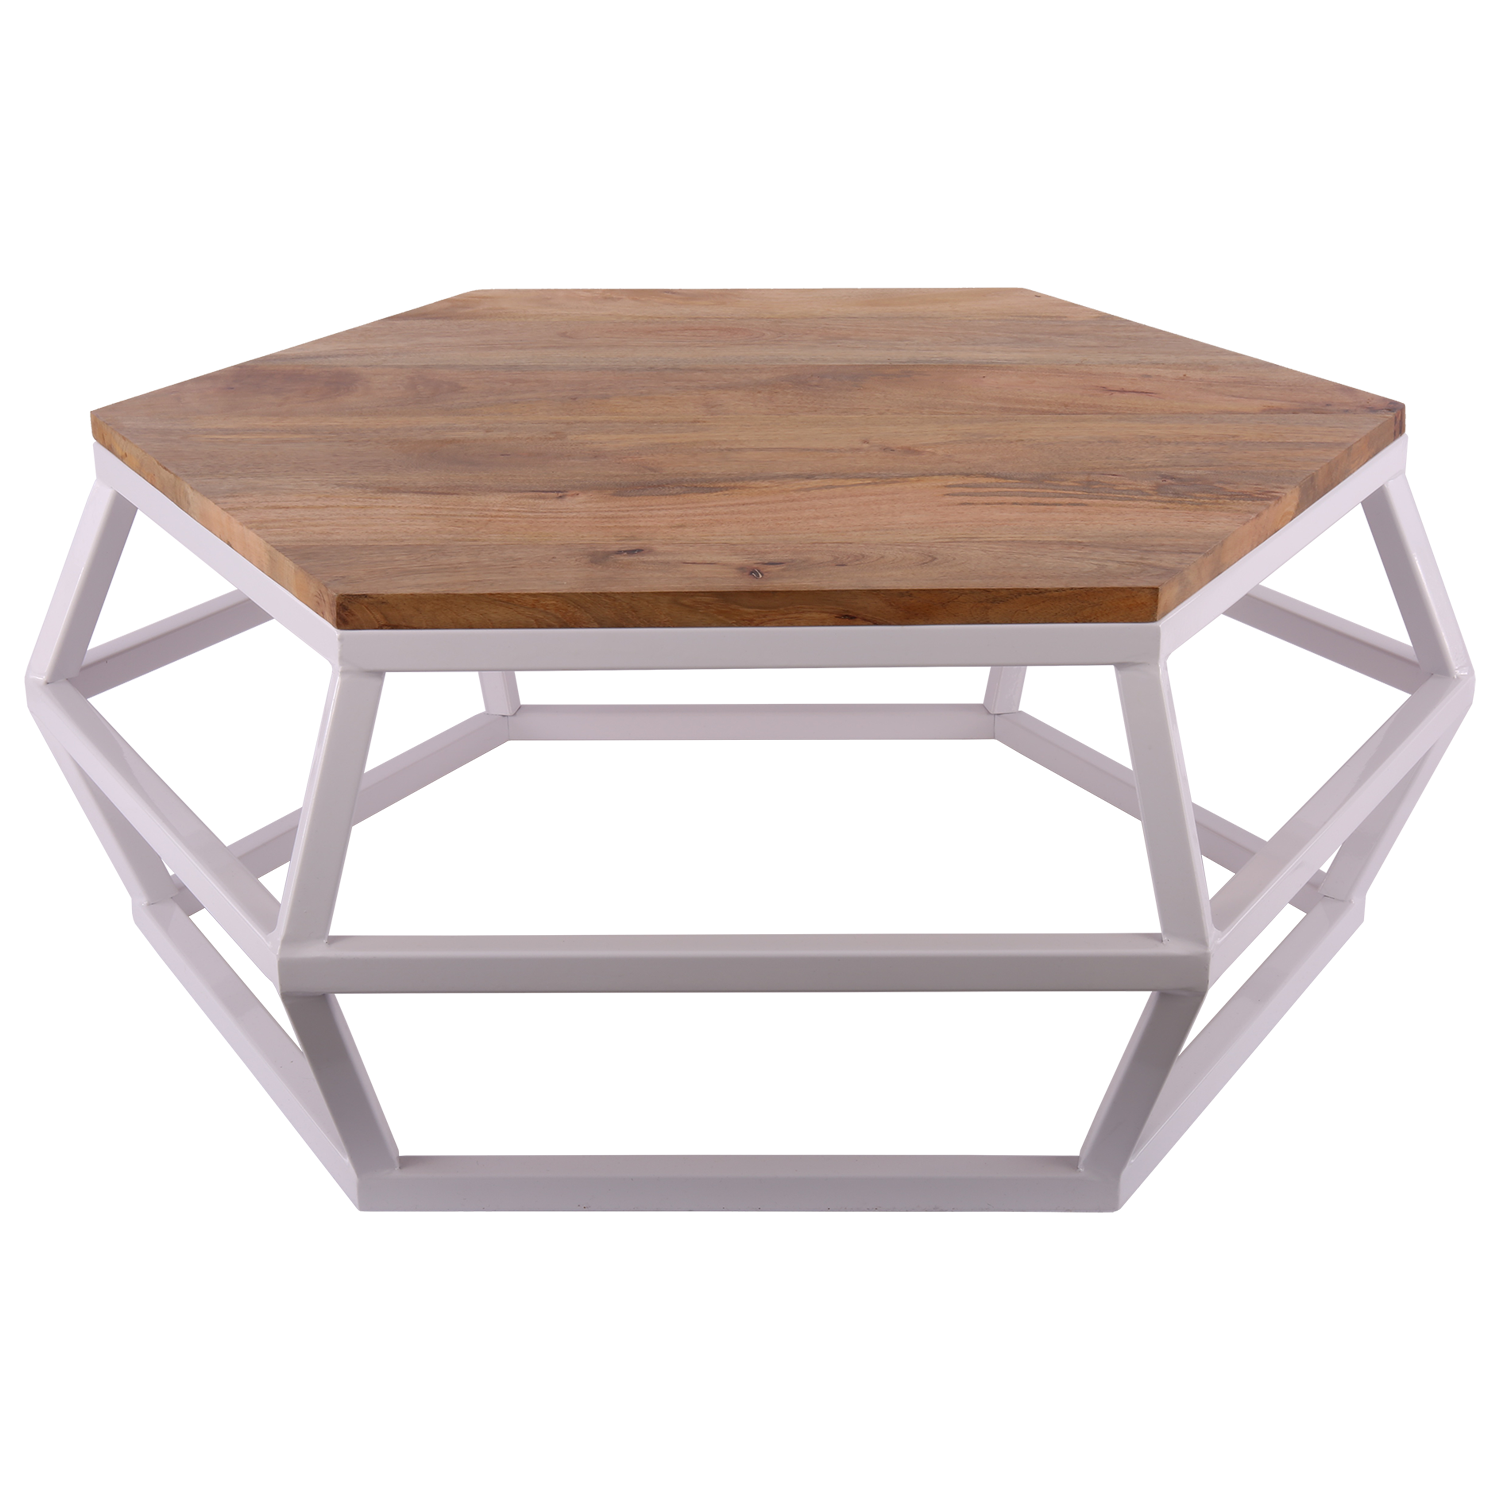 Table Basse Hexagonale Metal Blanc Et Bois